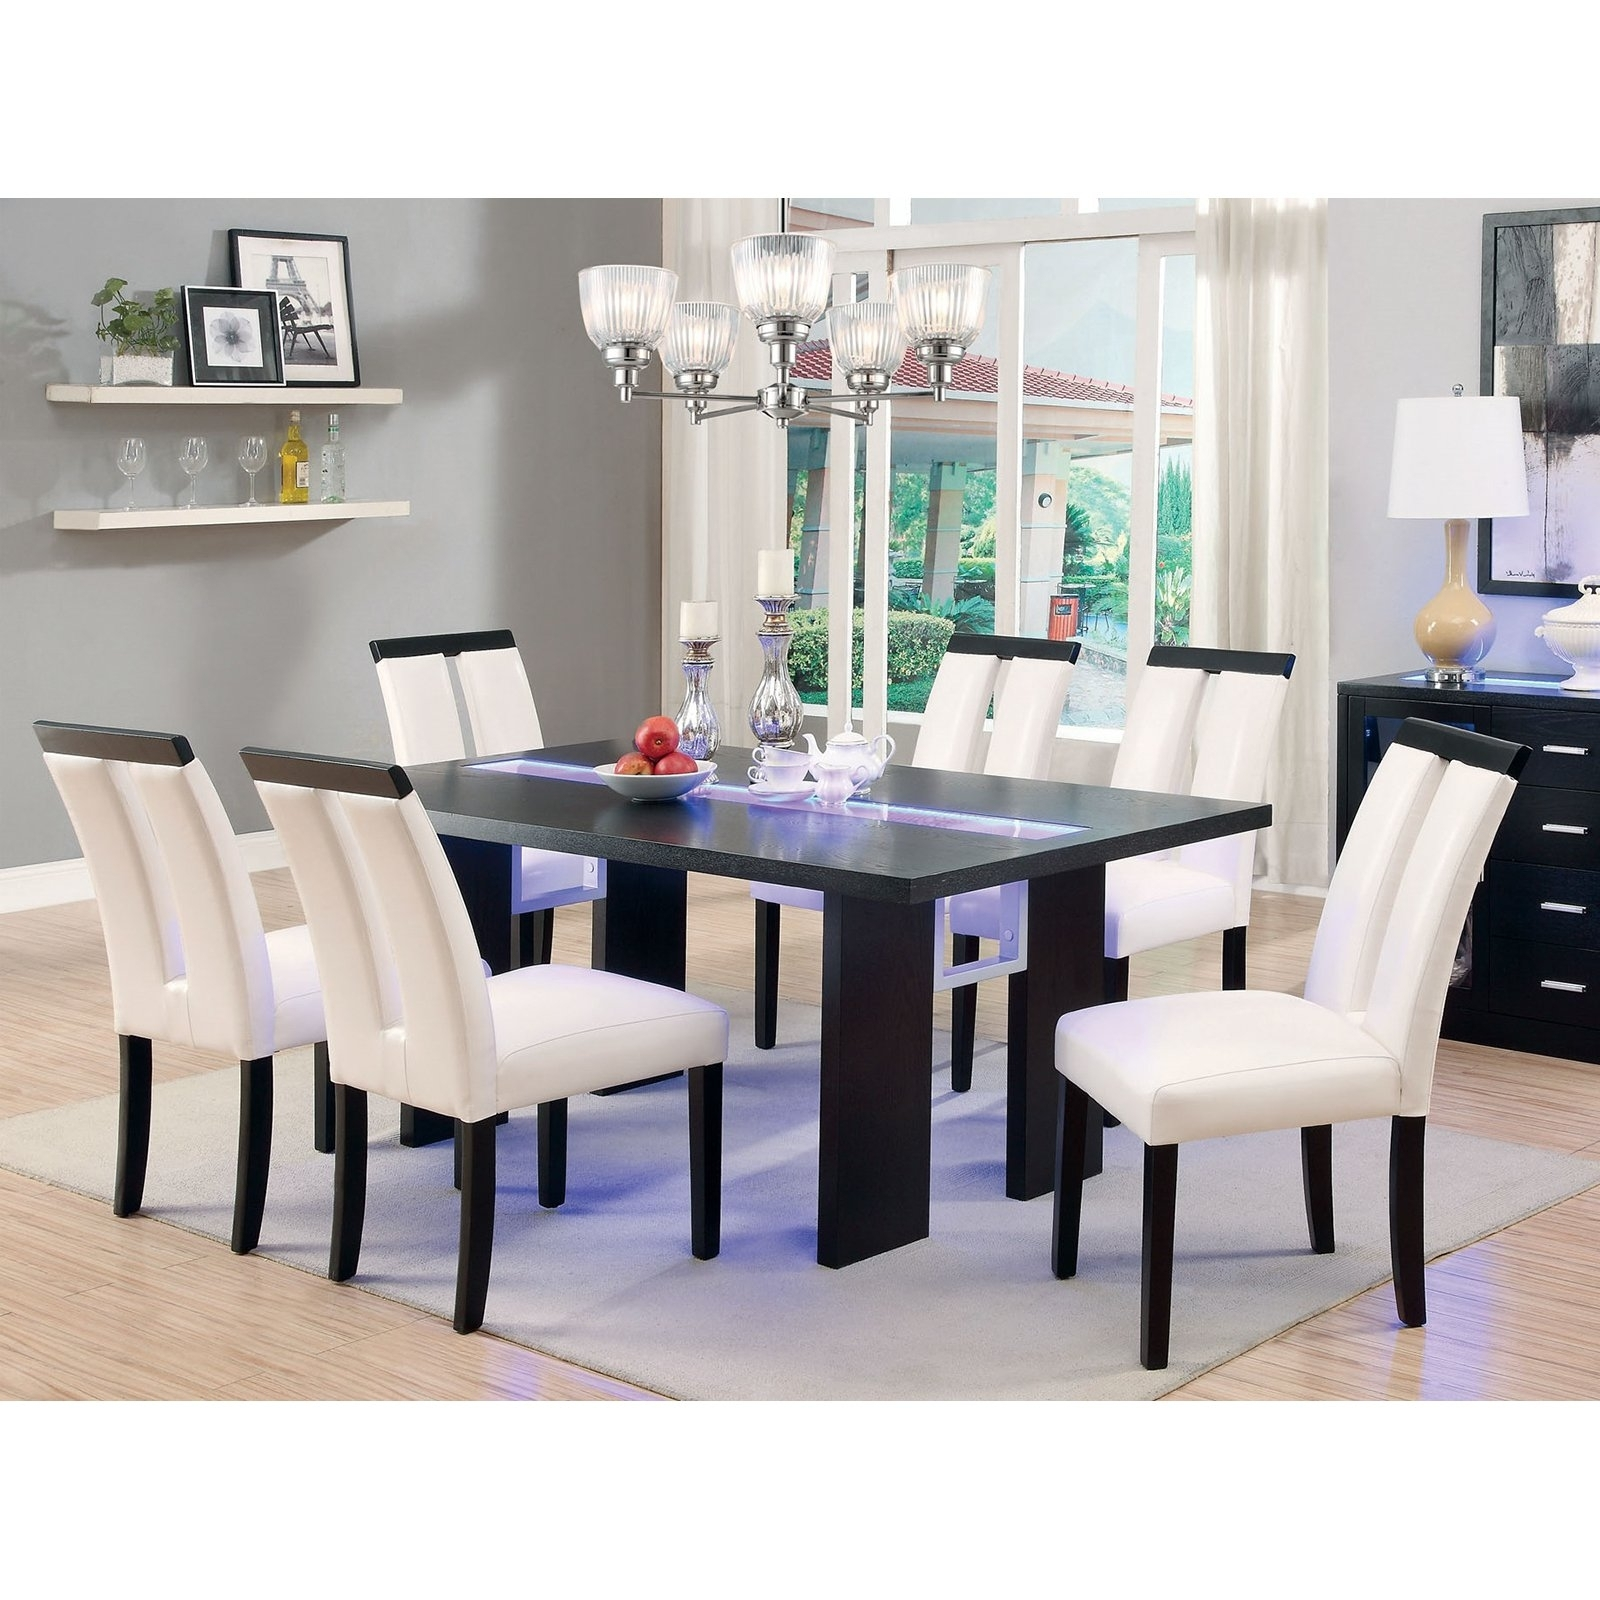 Hayneedle Pertaining To Dining Tables With Led Lights (View 11 of 25)